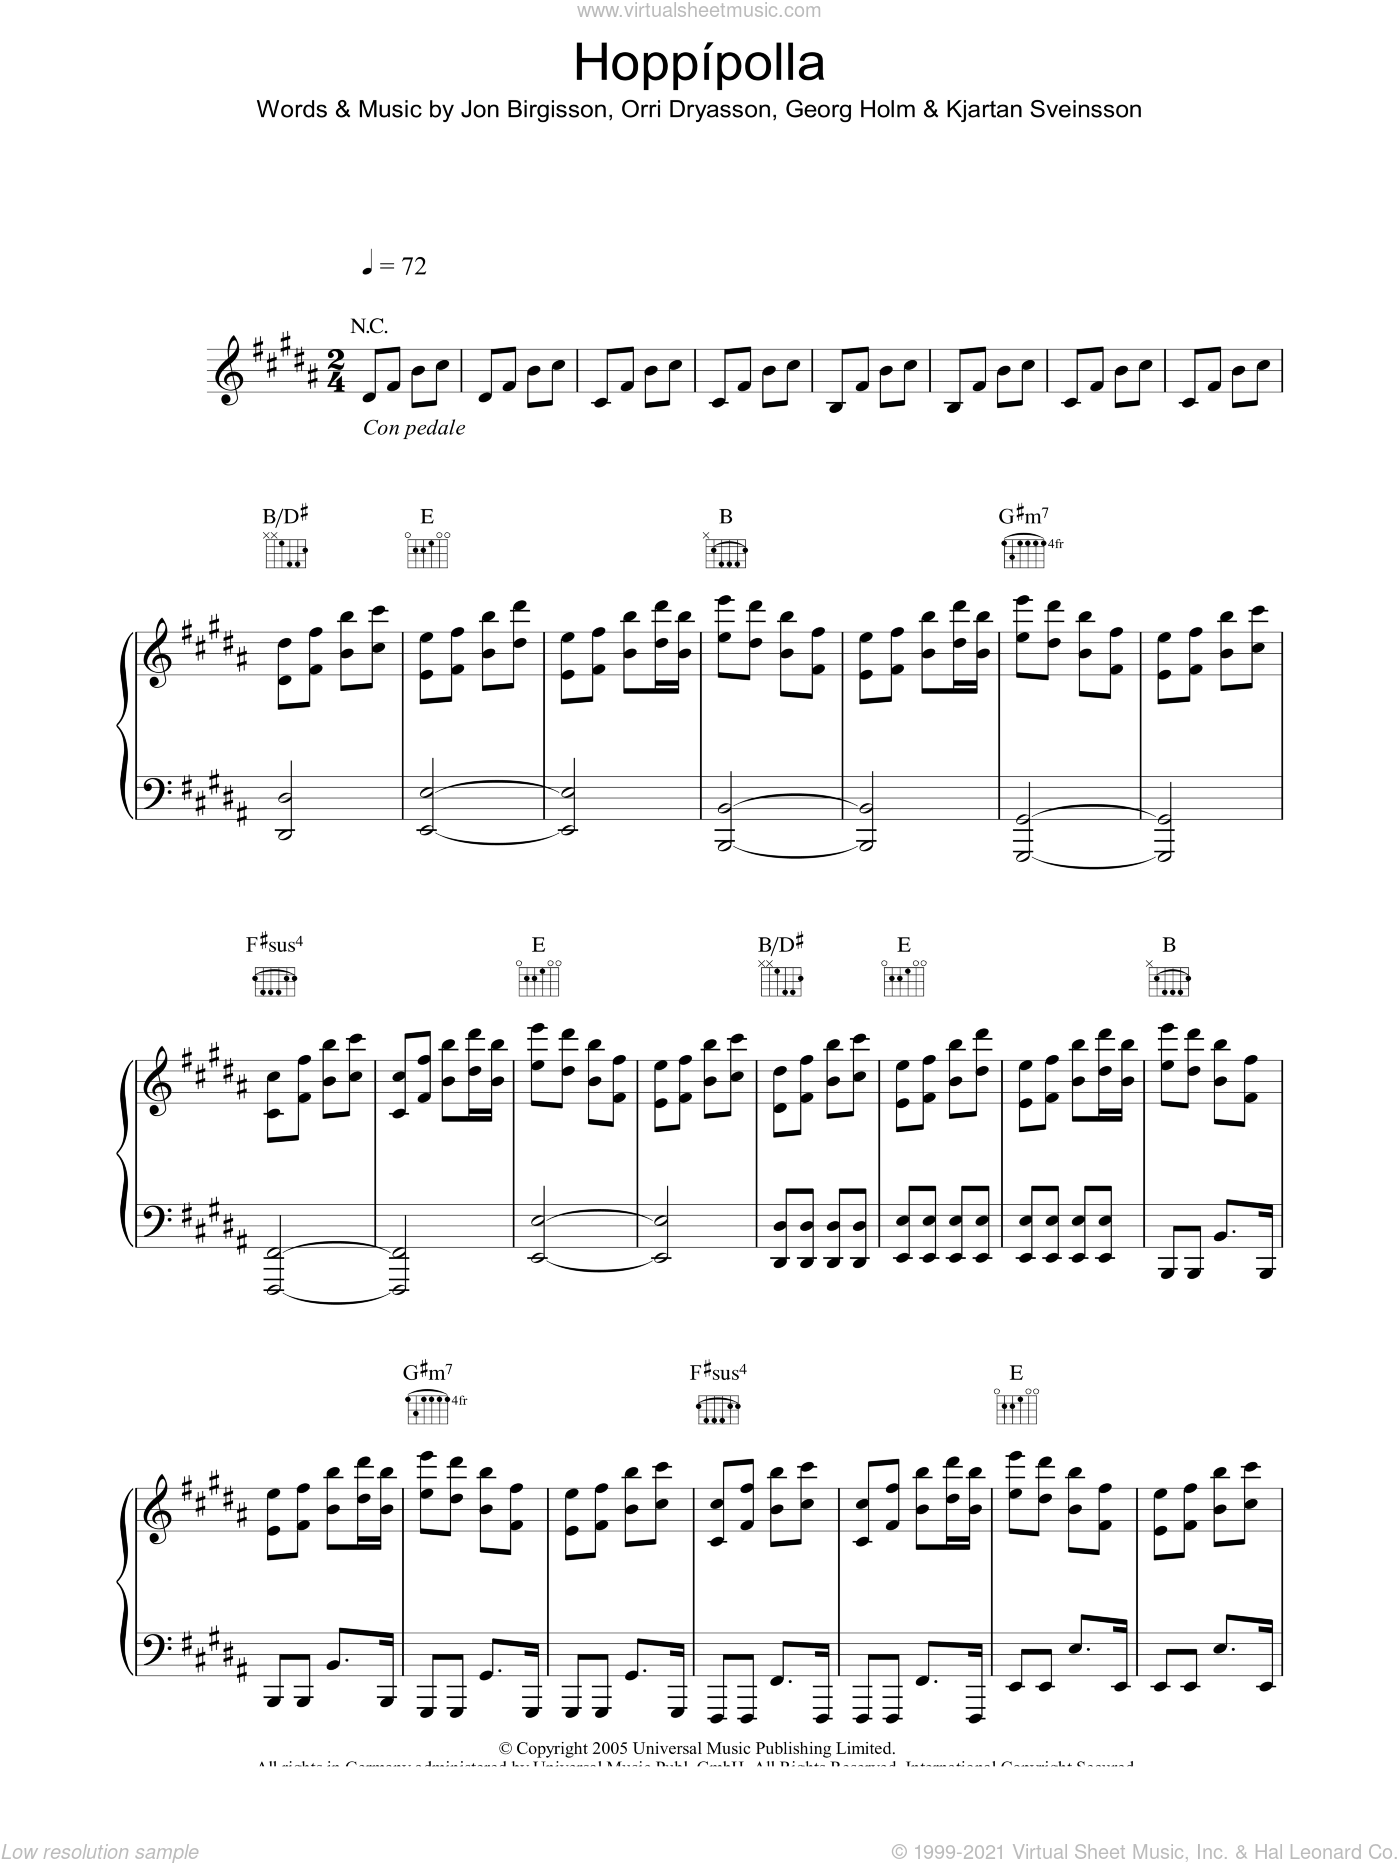 Hoppipolla sheet music for voice, piano or guitar by Georg Holm